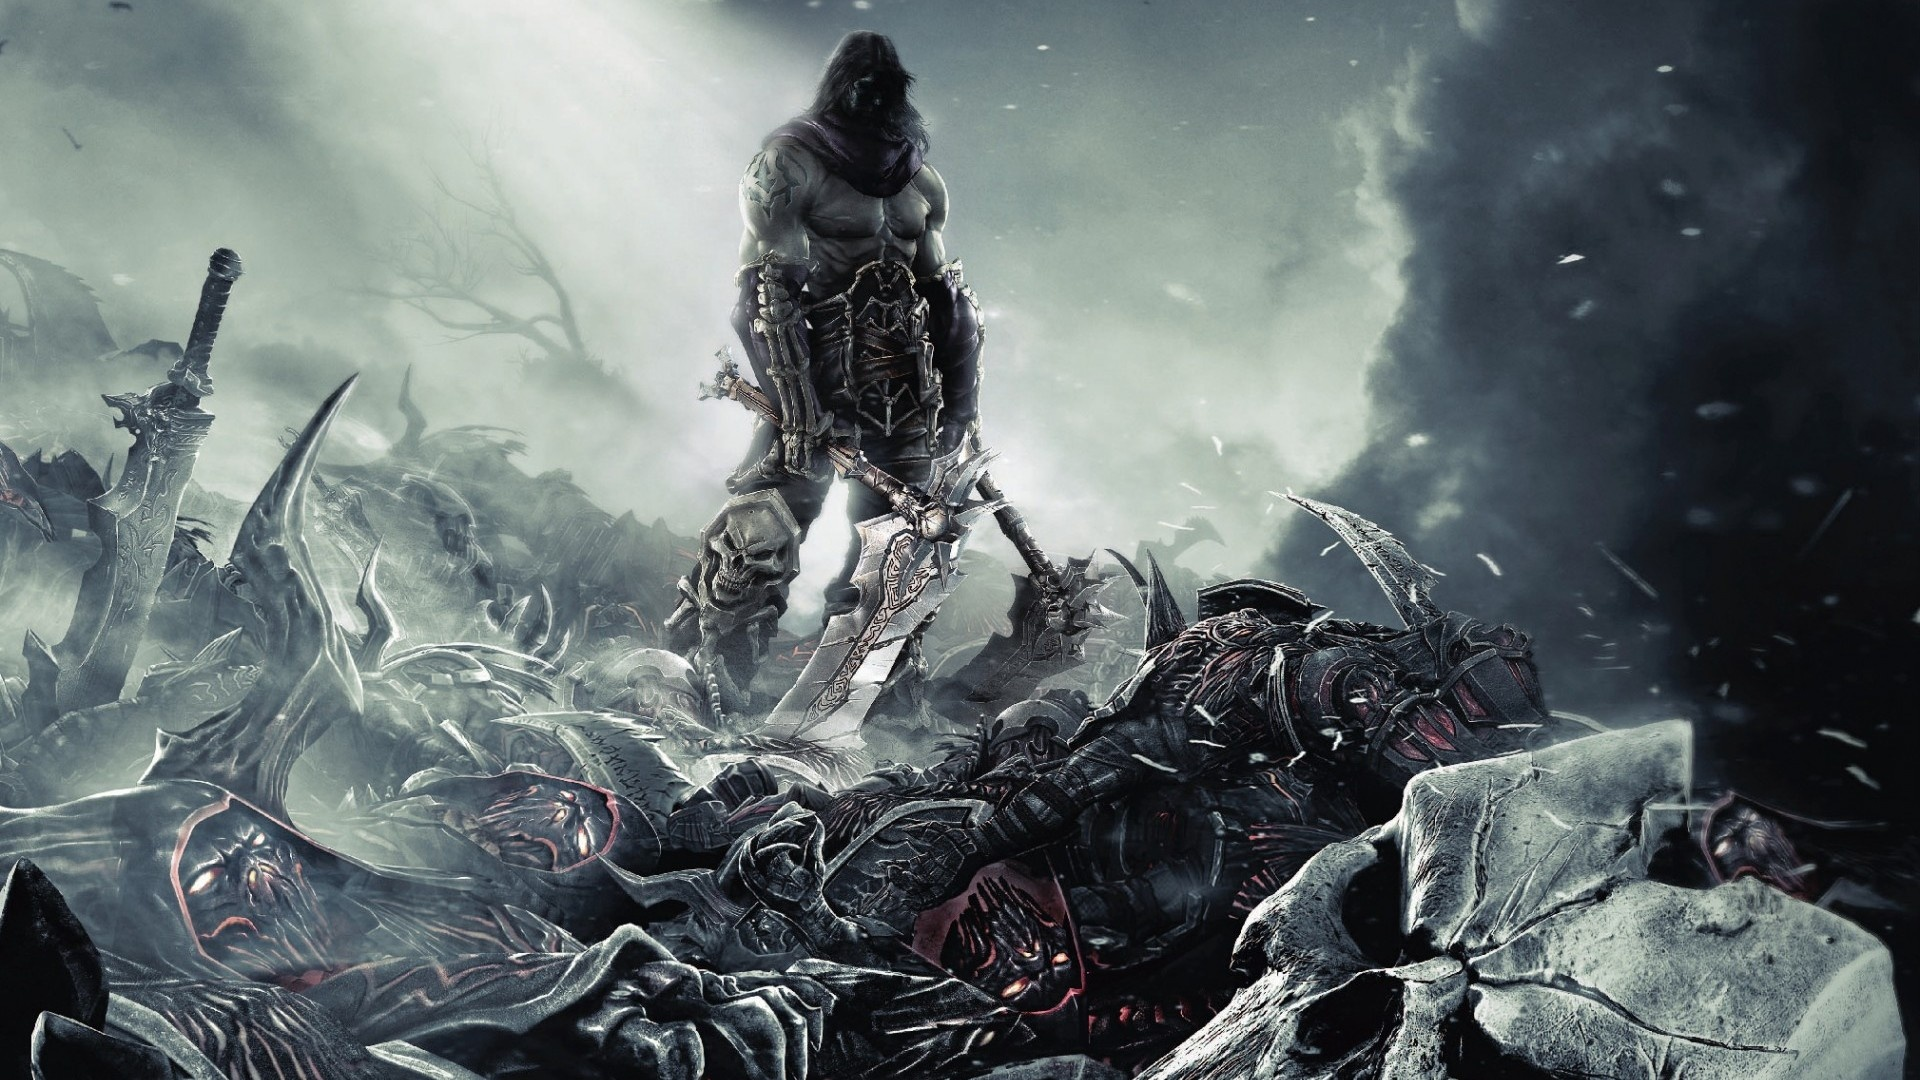 Darksiders 2 Background Wallpapers   1920x1080   687519 1920x1080